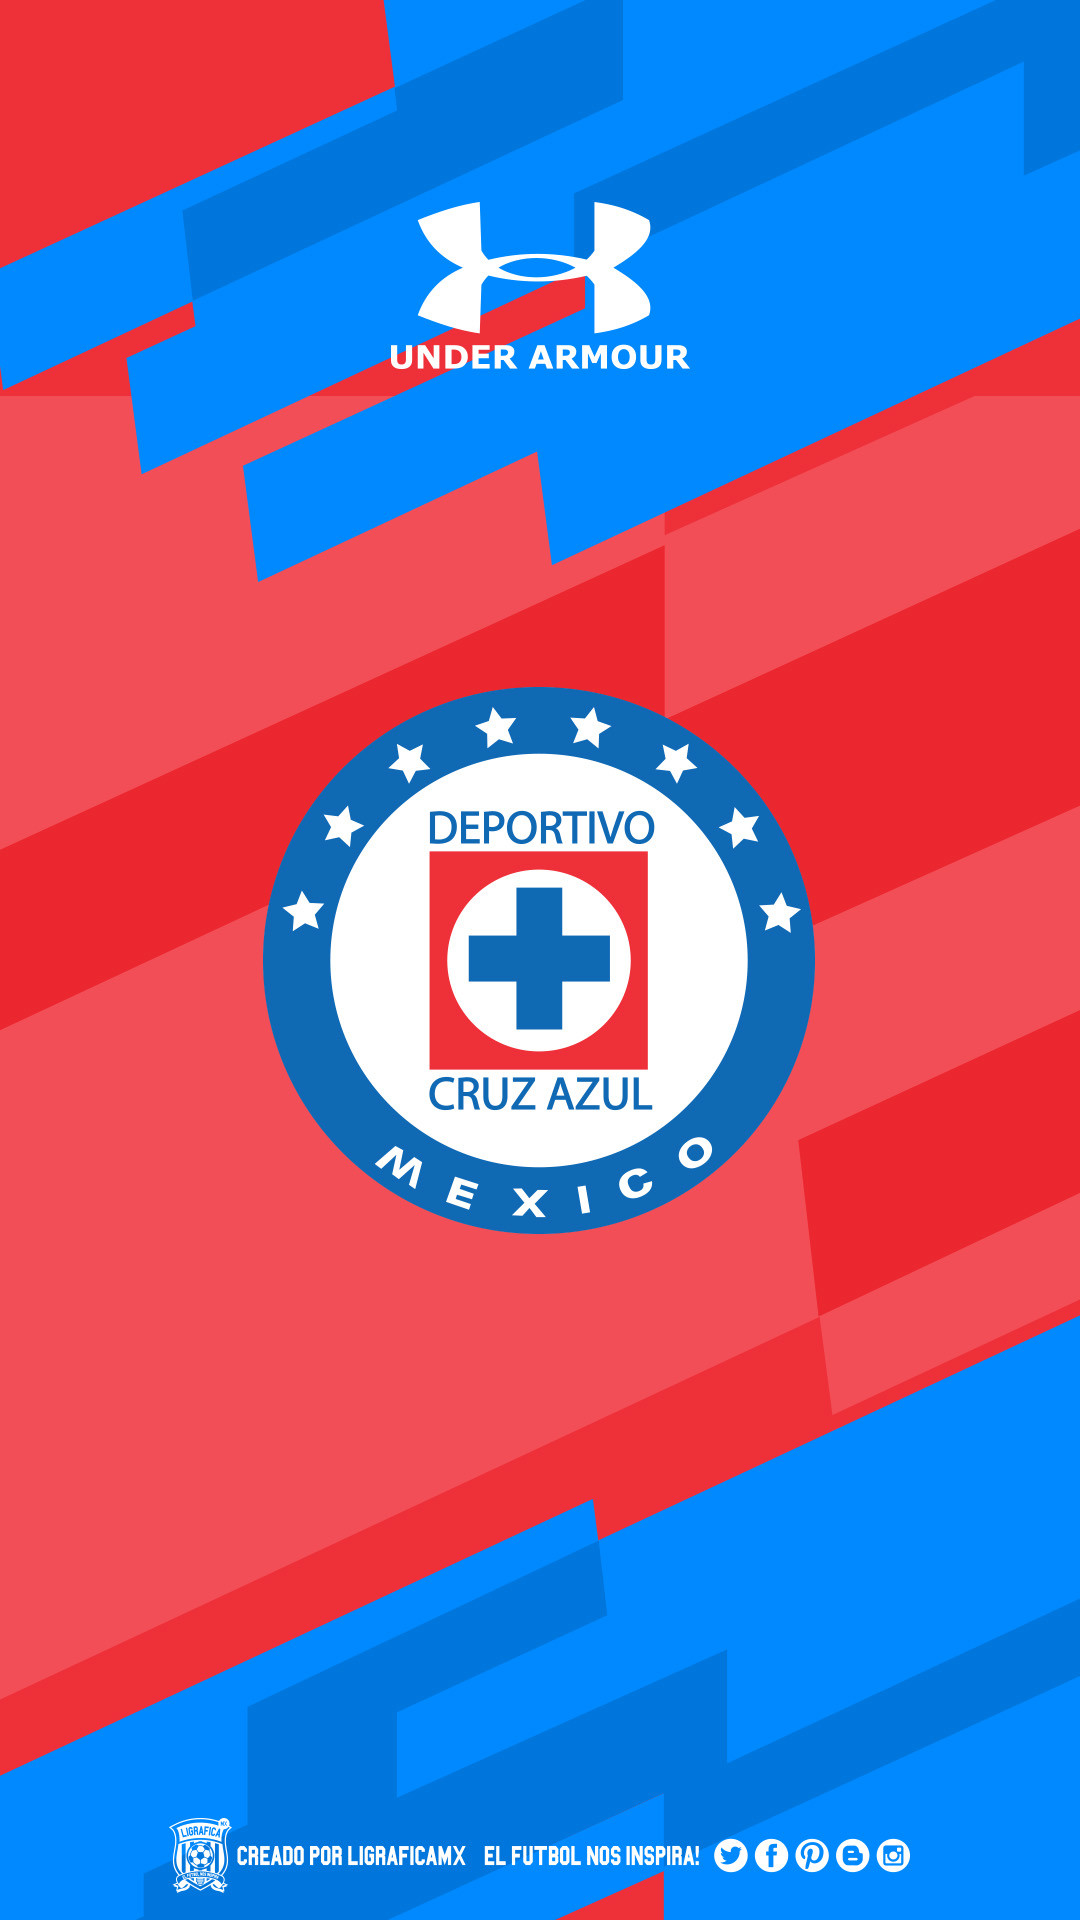 Hd Wallpaper Iphone 7 Cruz Azul Wallpapers 77 Images